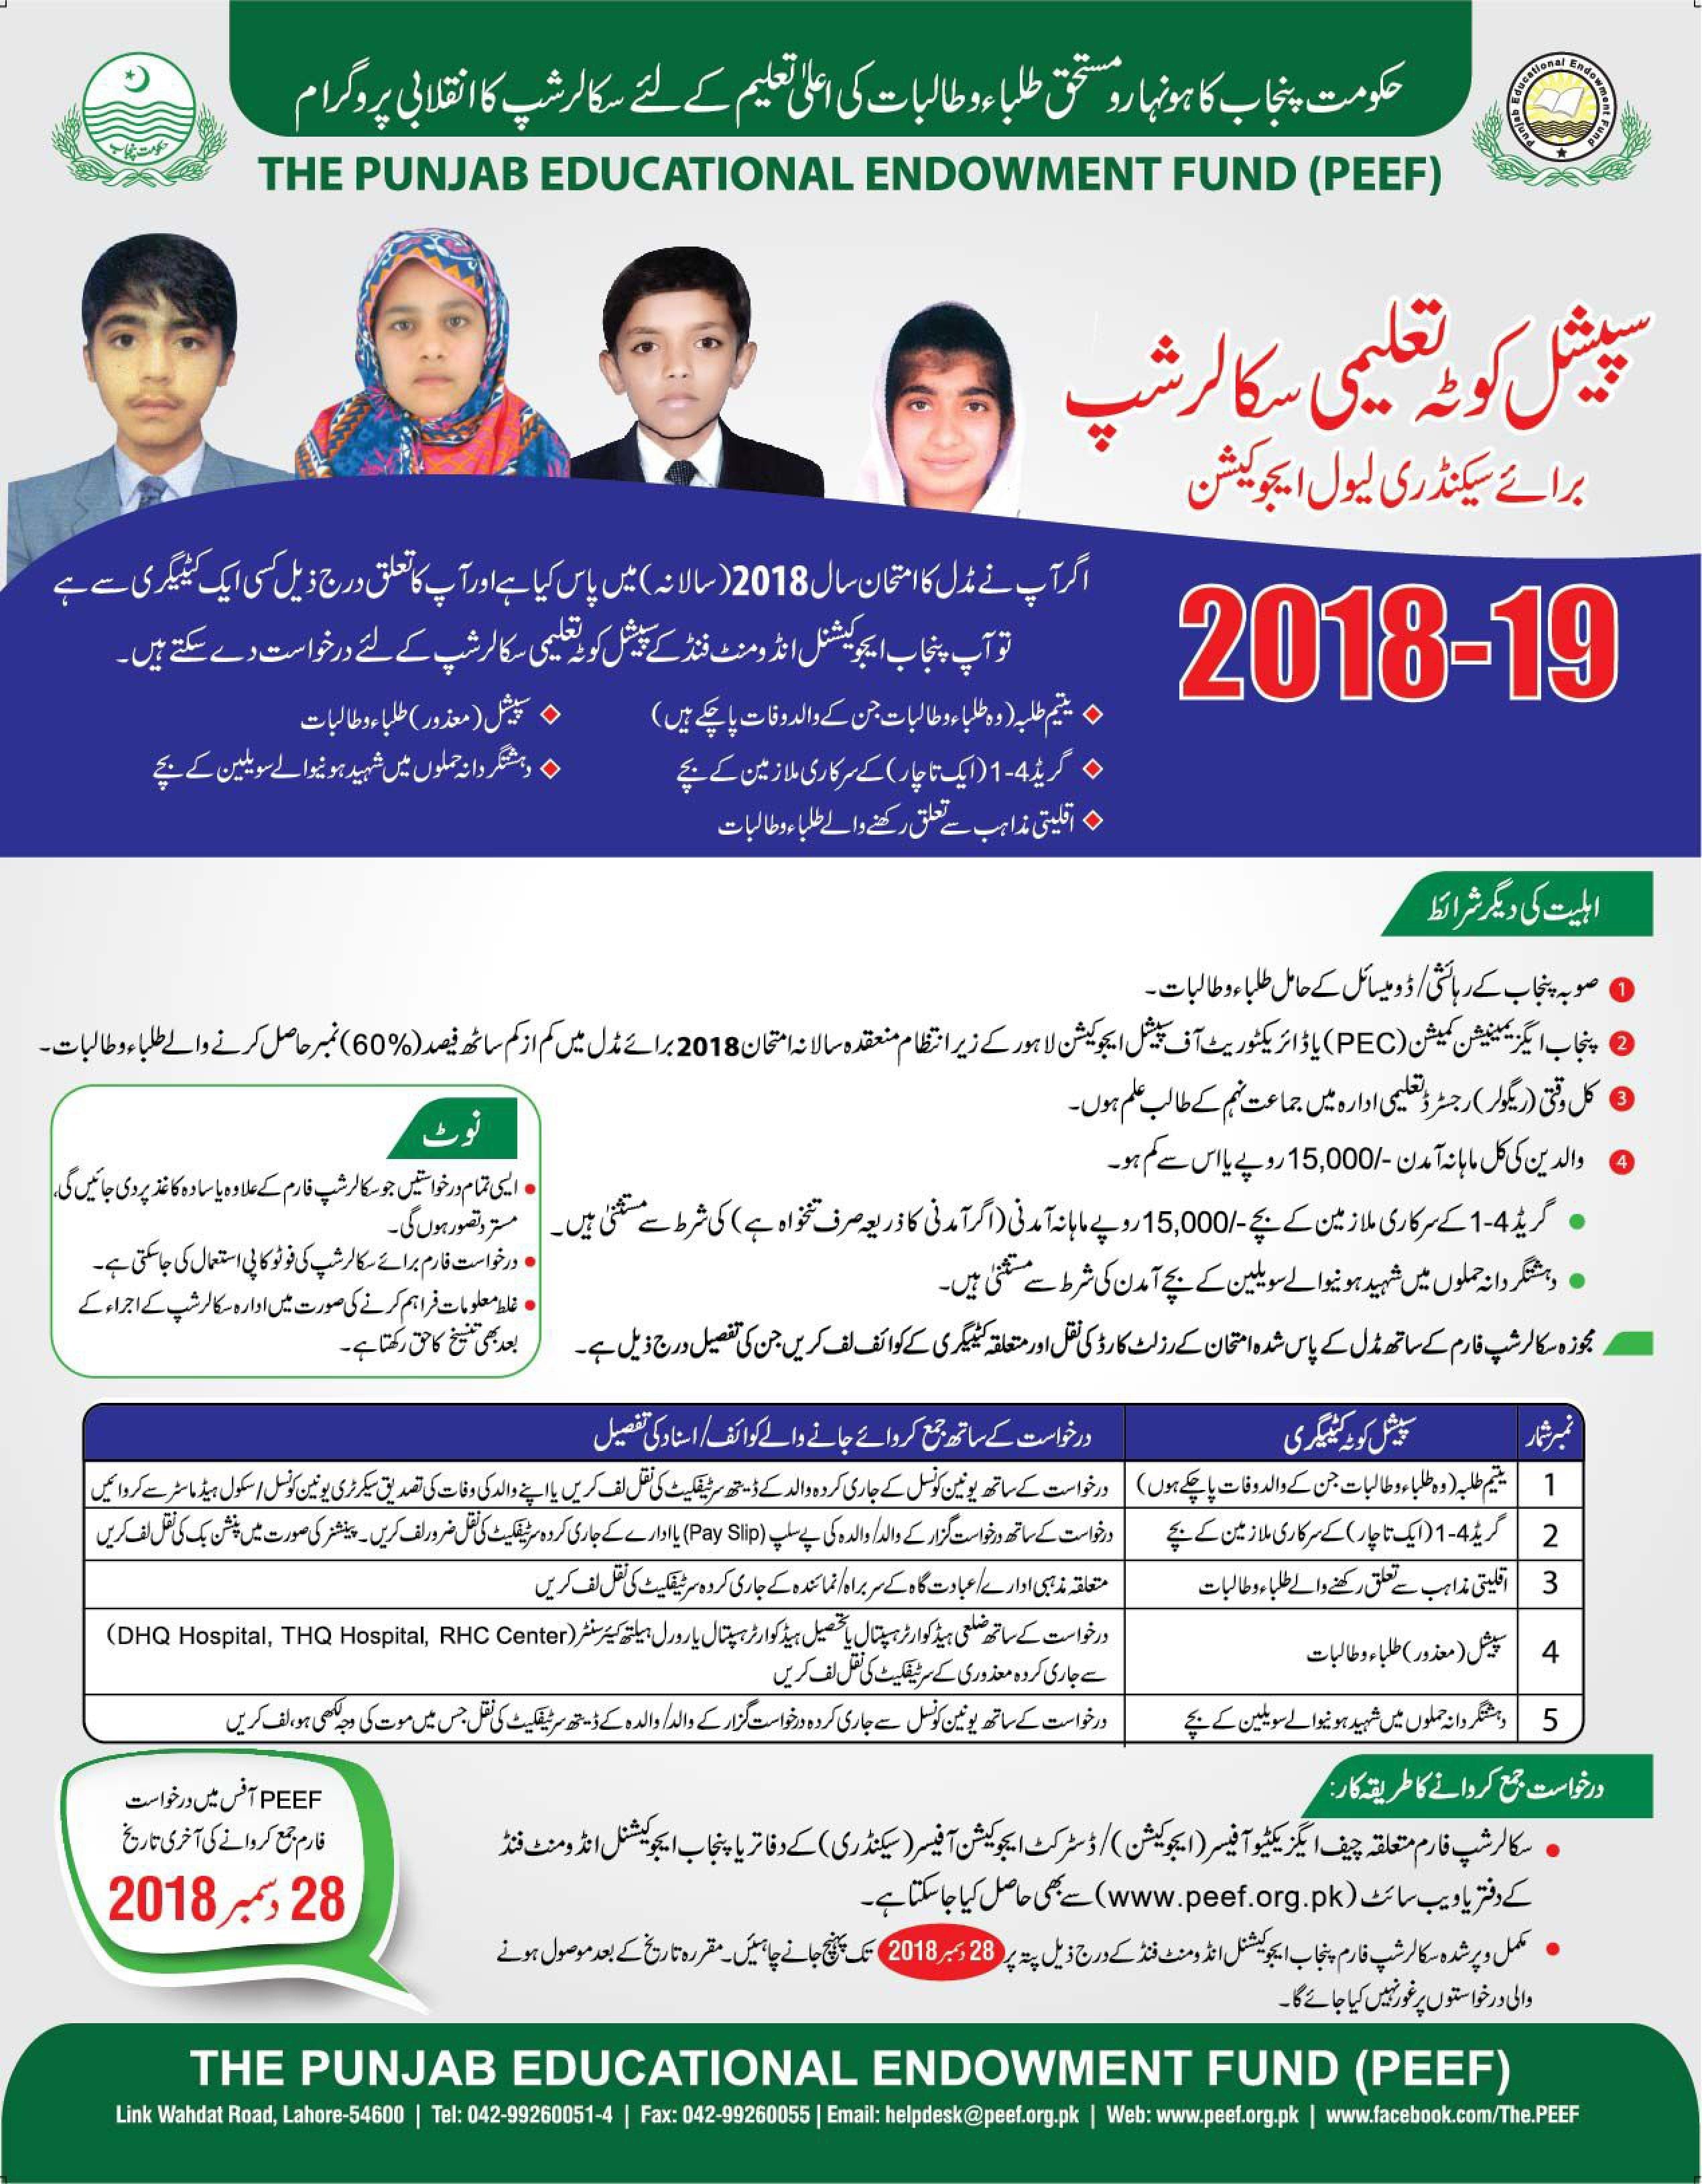 PEEF Scholarship for Matric 2019 Application Form Download